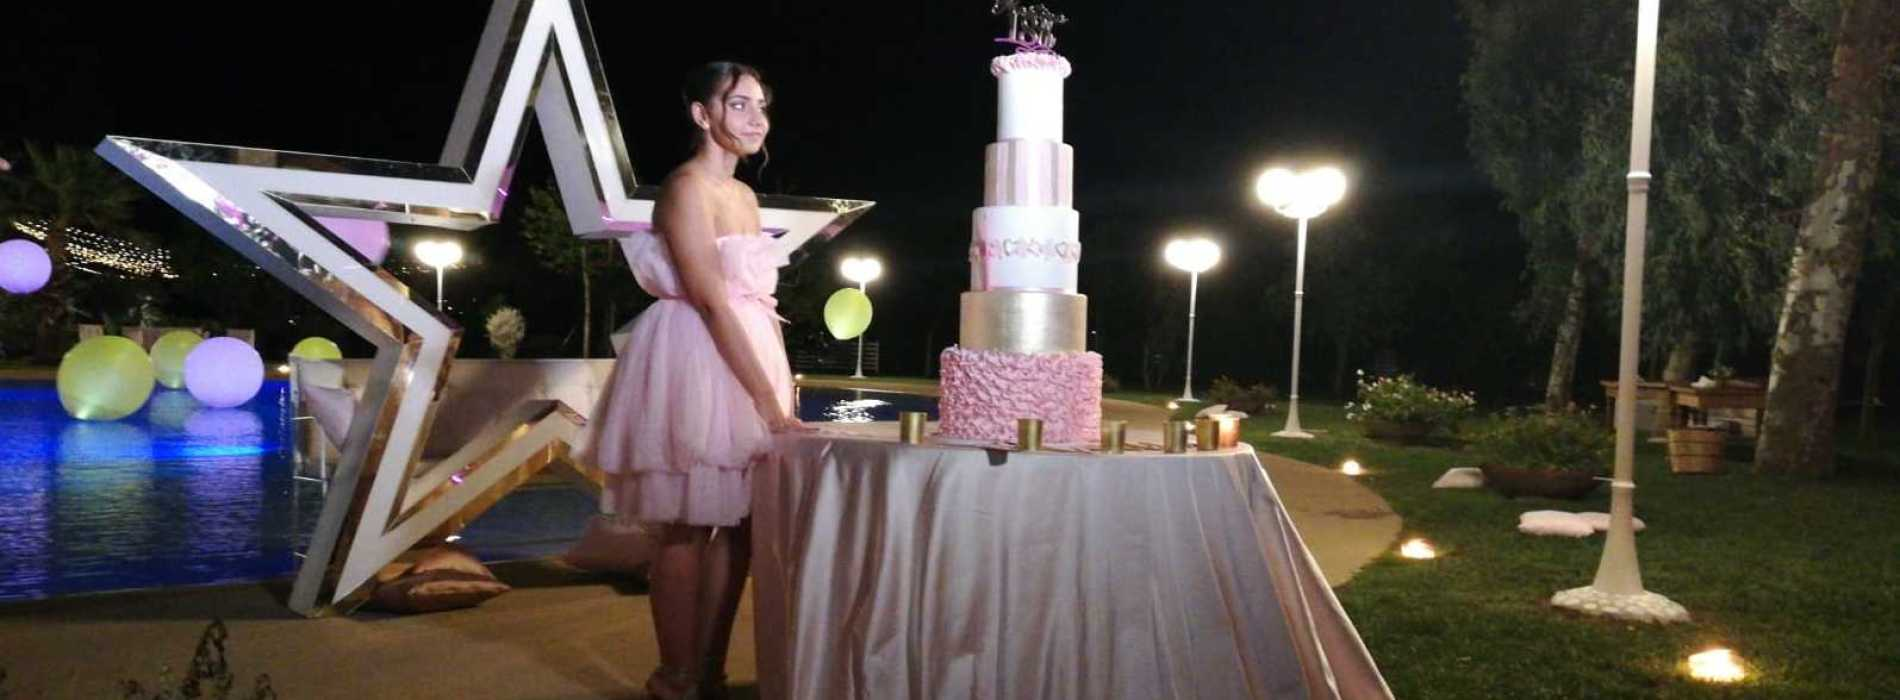 Martina Ledda, fashion party dei 18 anni con quadro d'autore